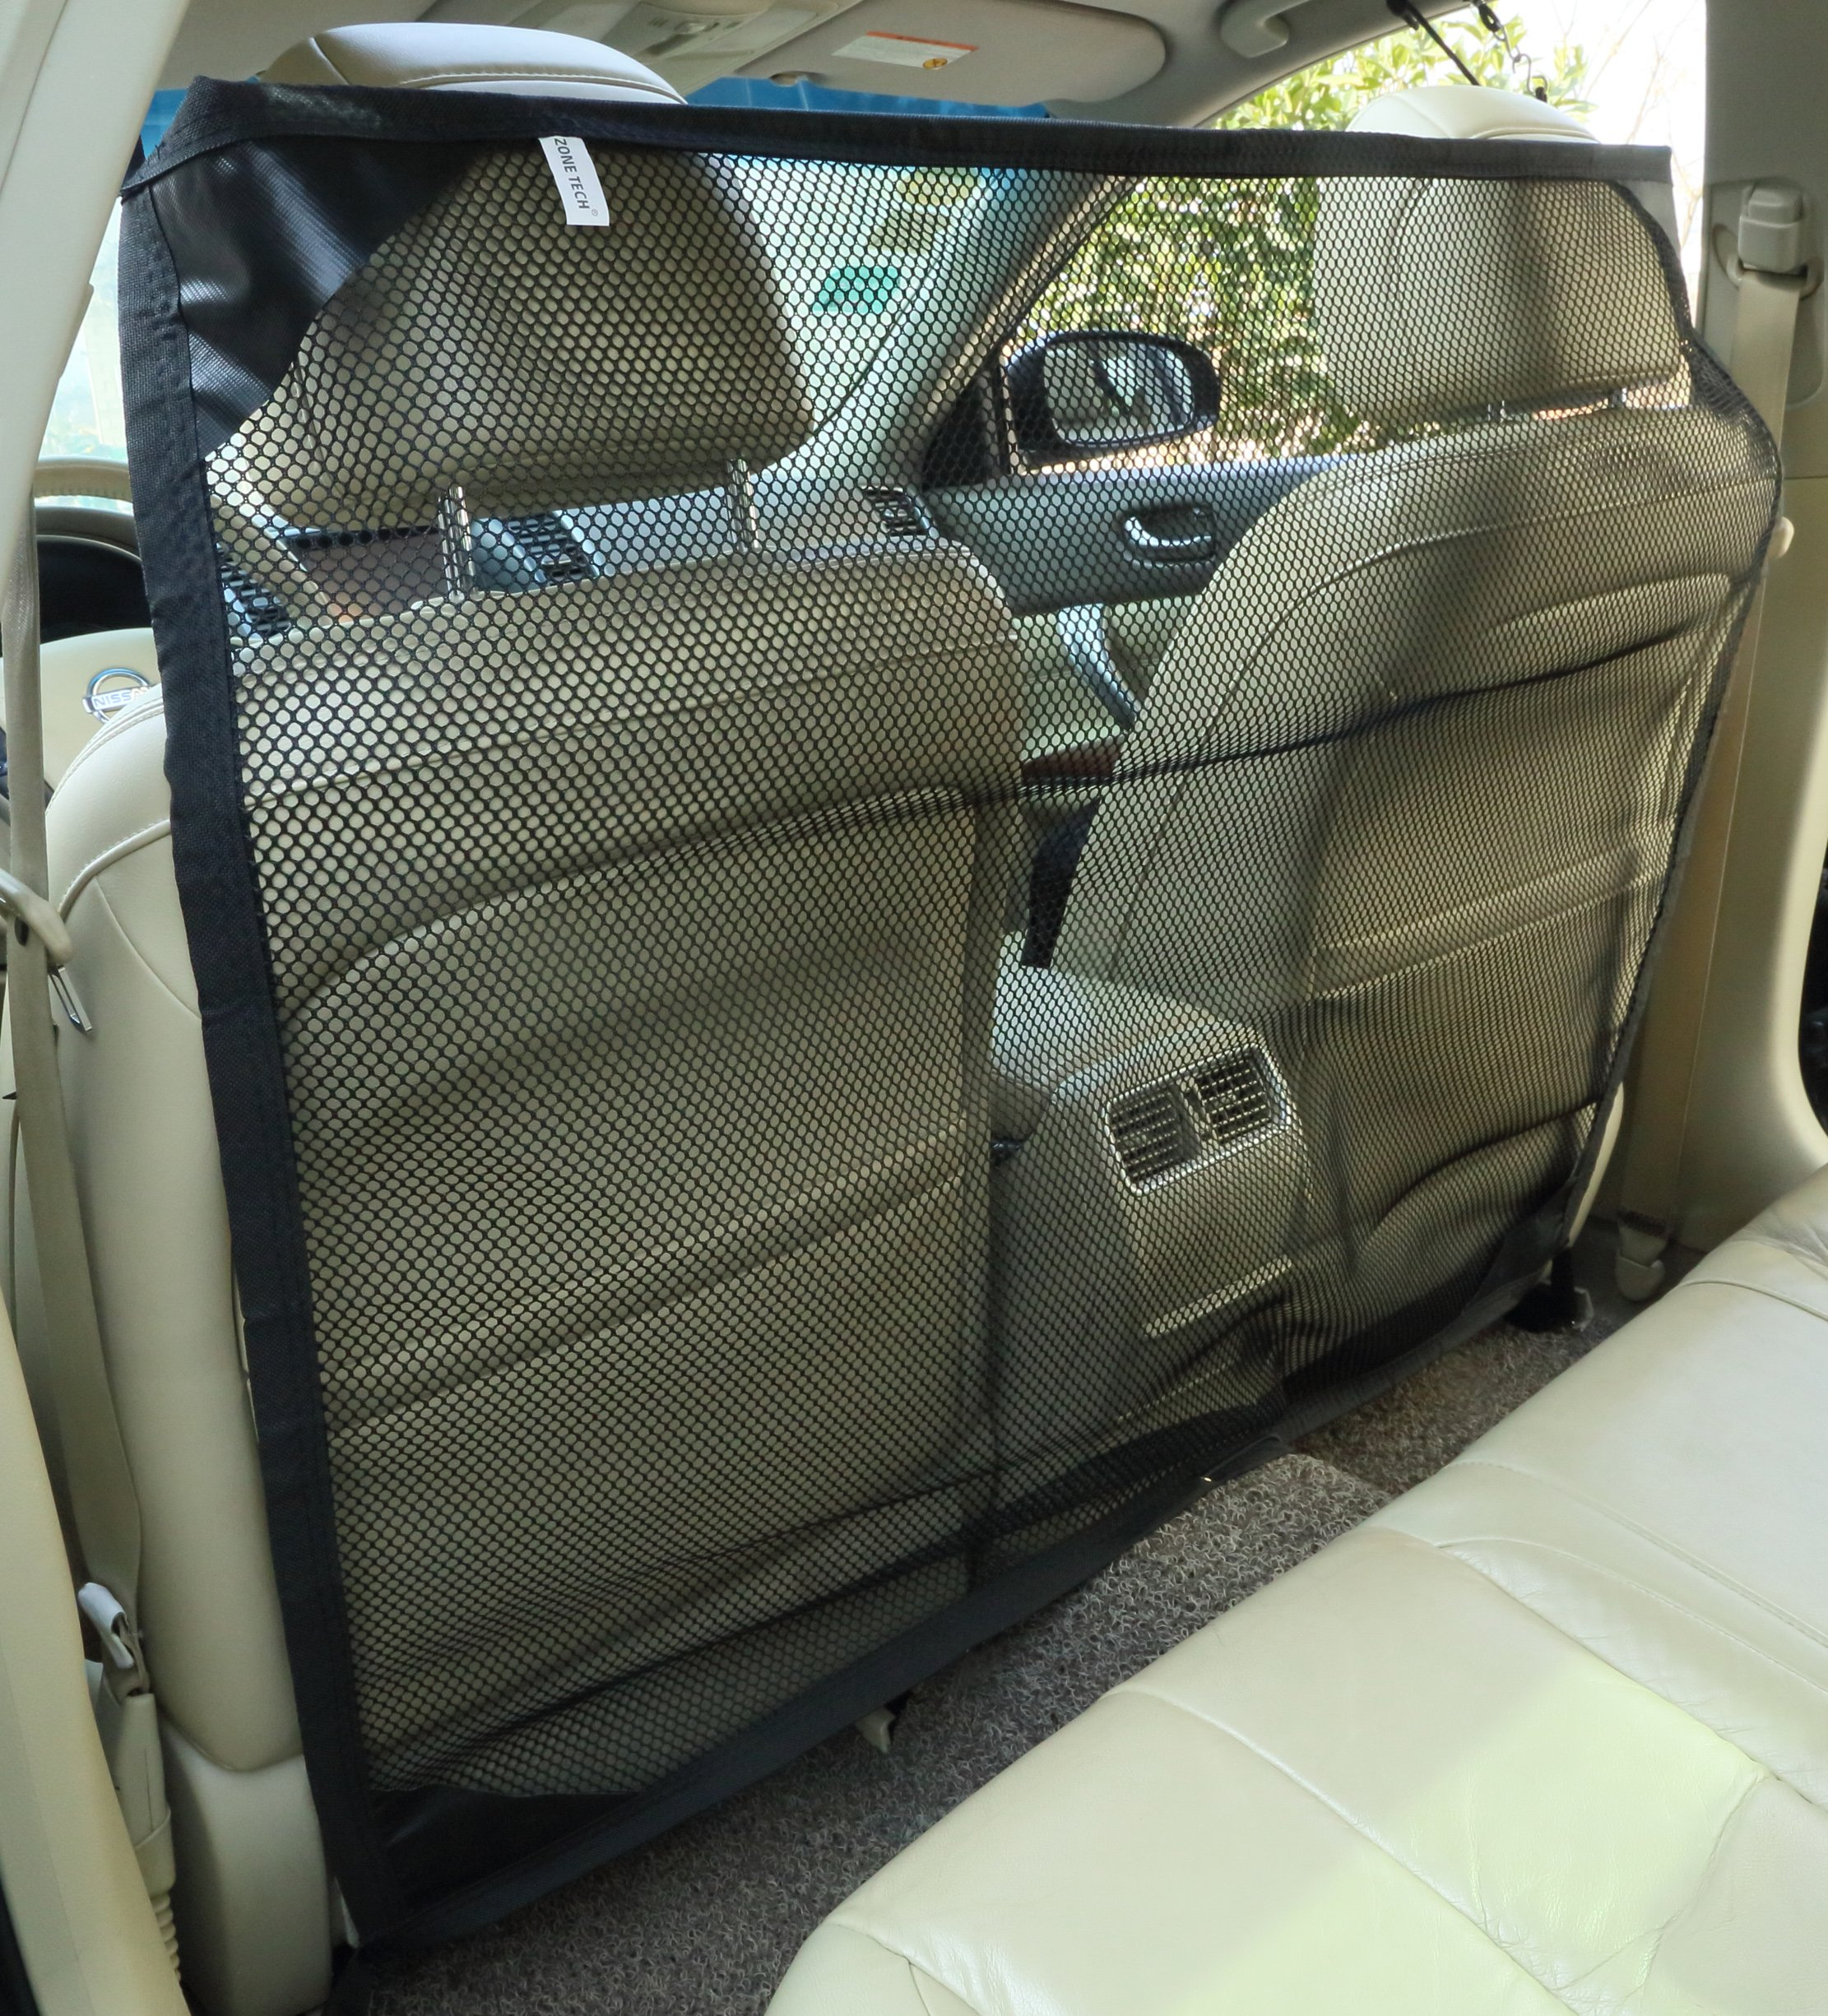 Zone Tech Vehicle Travel Pet Net Barrier 46 X 37 Inches